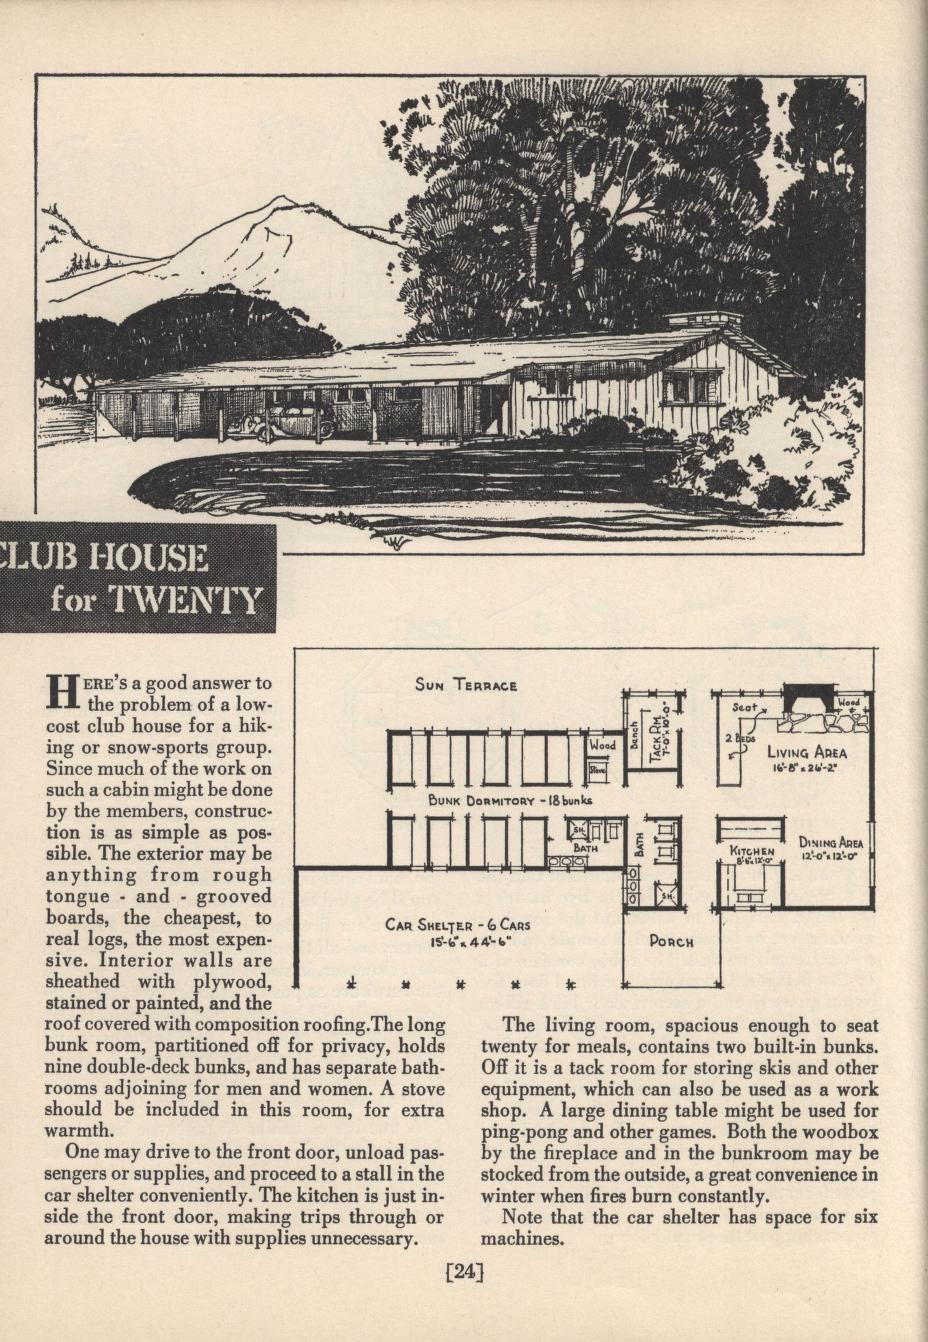 Sunset S Cabin Plan Book Sunset Magazine Free Download Borrow And Streaming Internet Archive Cabin Plans Cabin Sunset Magazine